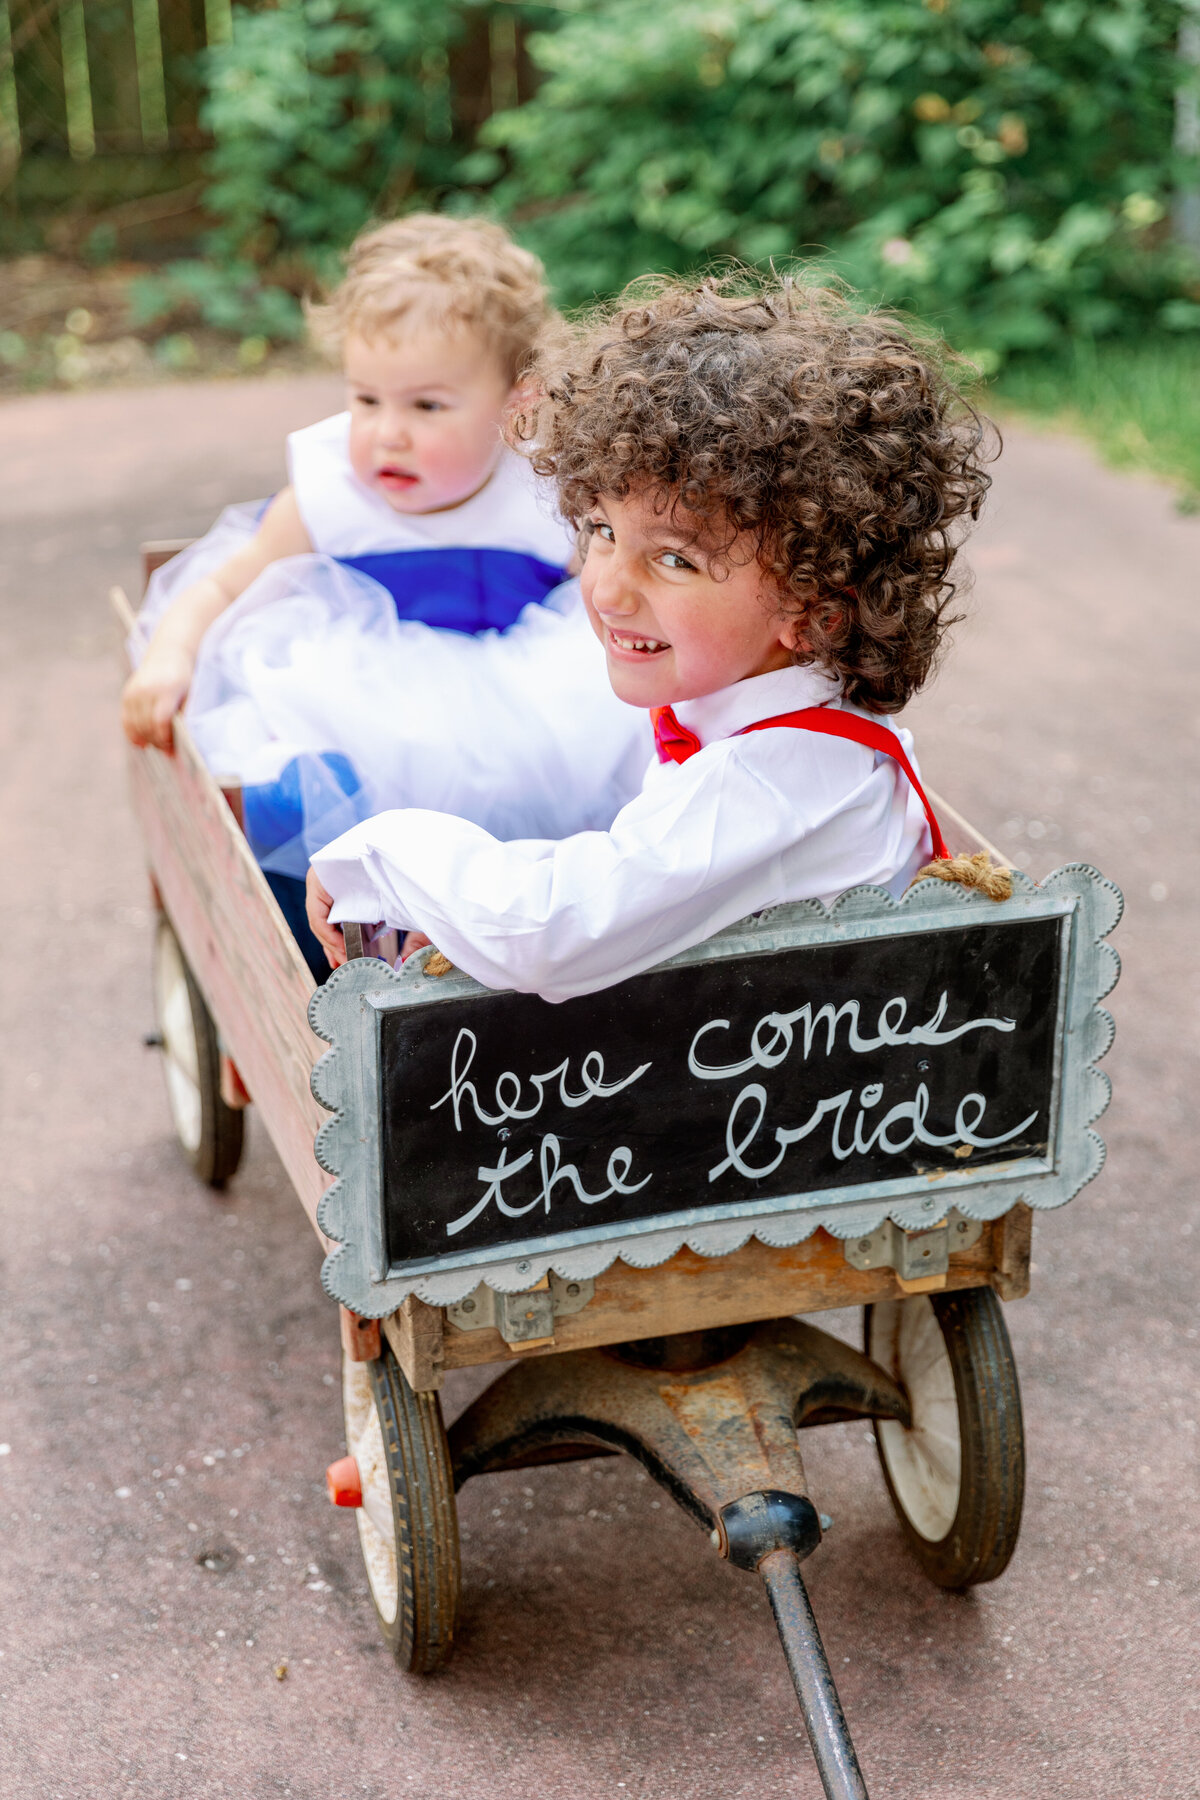 Flower Girl and Ring Bearer in a Wagon